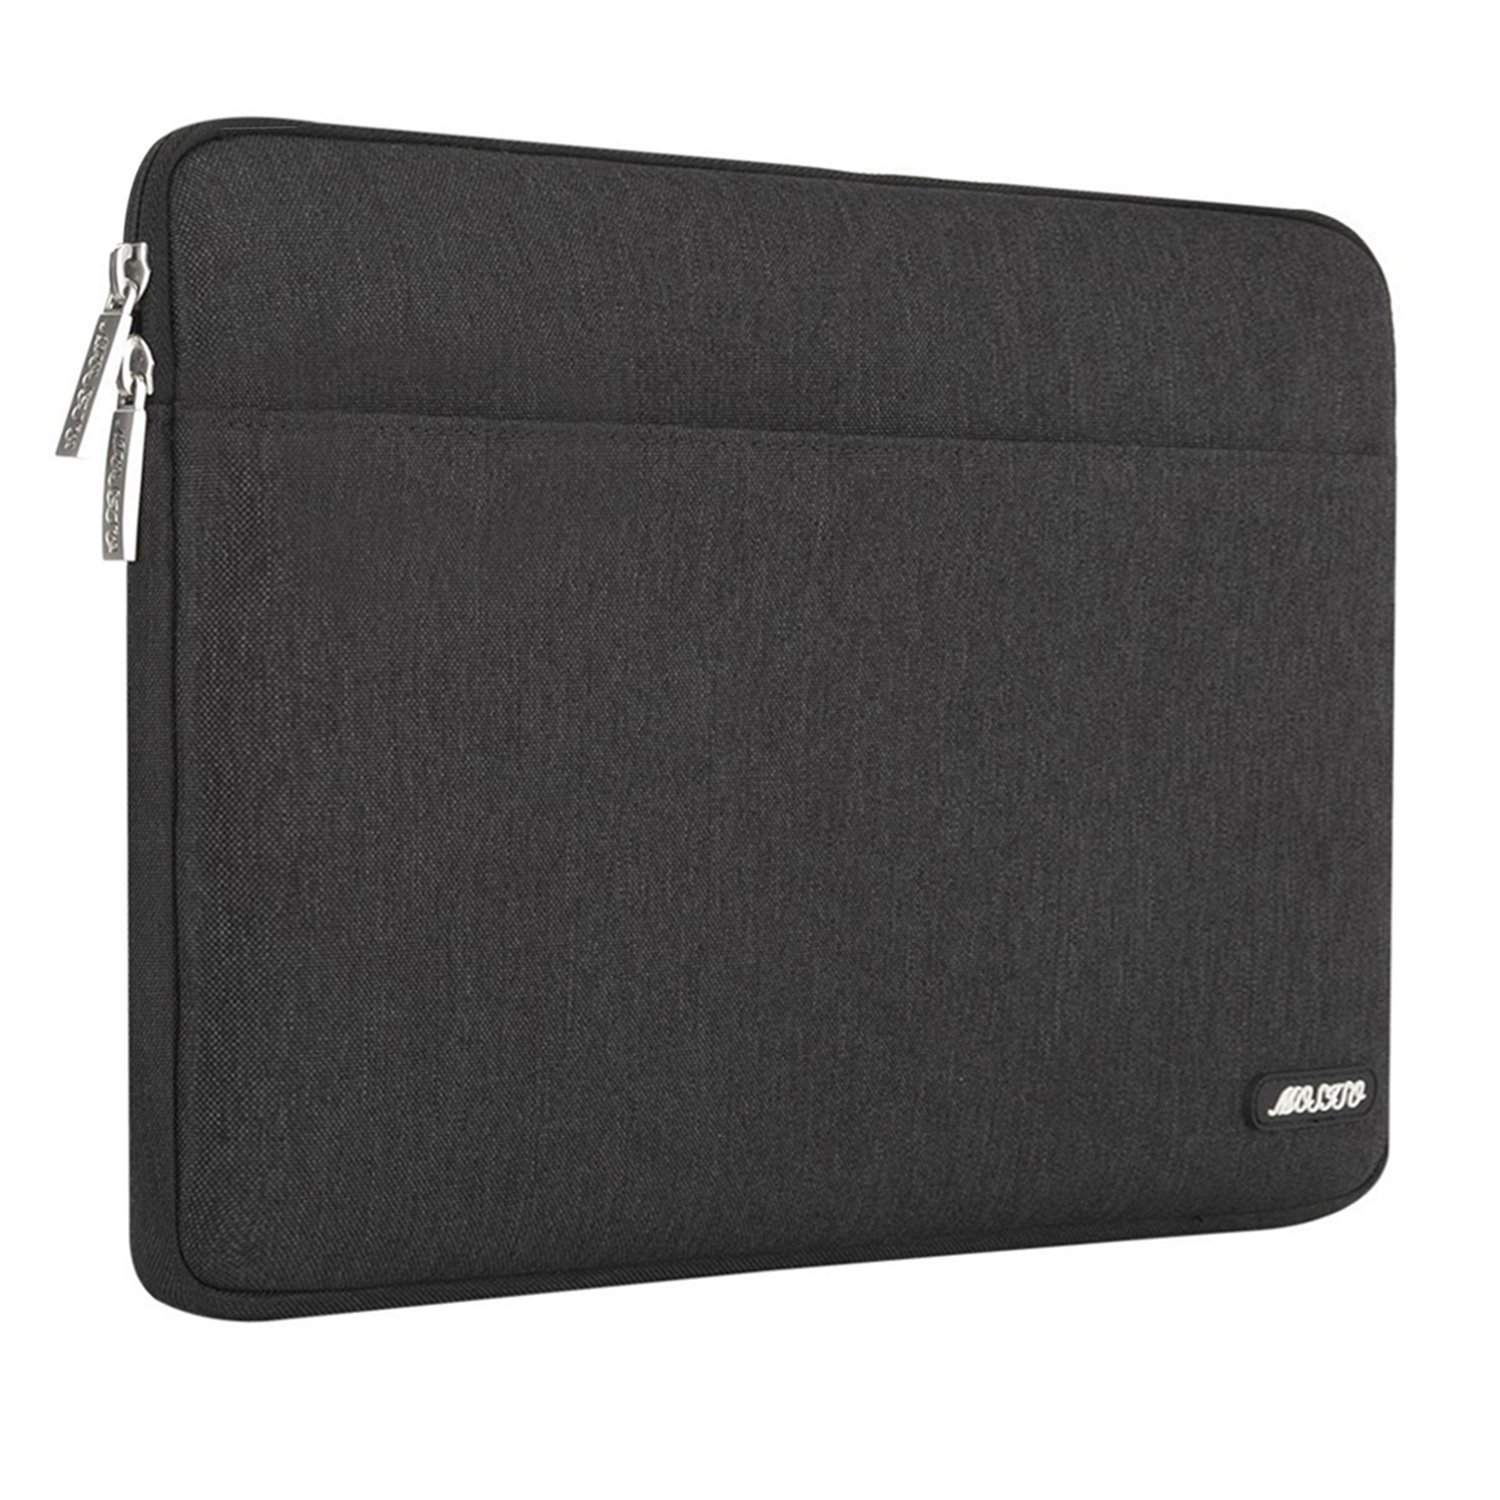 MOSISO Laptop Sleeve Bag Compatible 15-15.6 Inch MacBook Pro, Notebook Computer, Spill Resistant Polyester Horizontal Protective Carrying Case Cover, Black